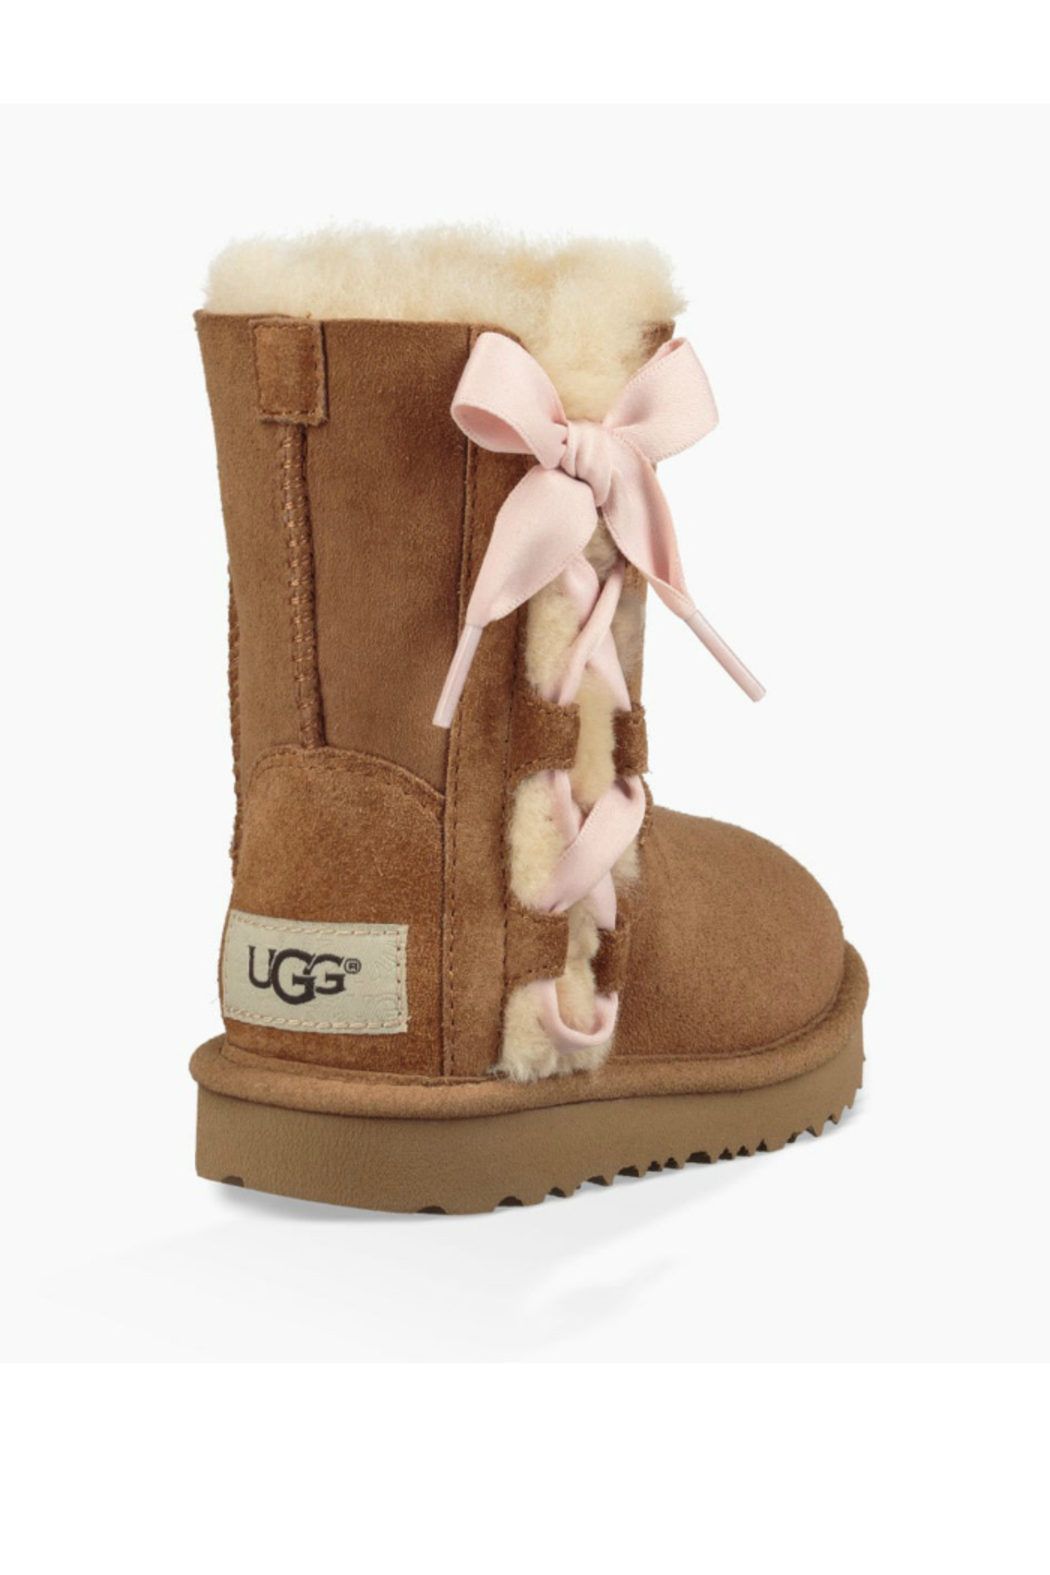 Ugg UGG KIDS PALA - Back Cropped Image